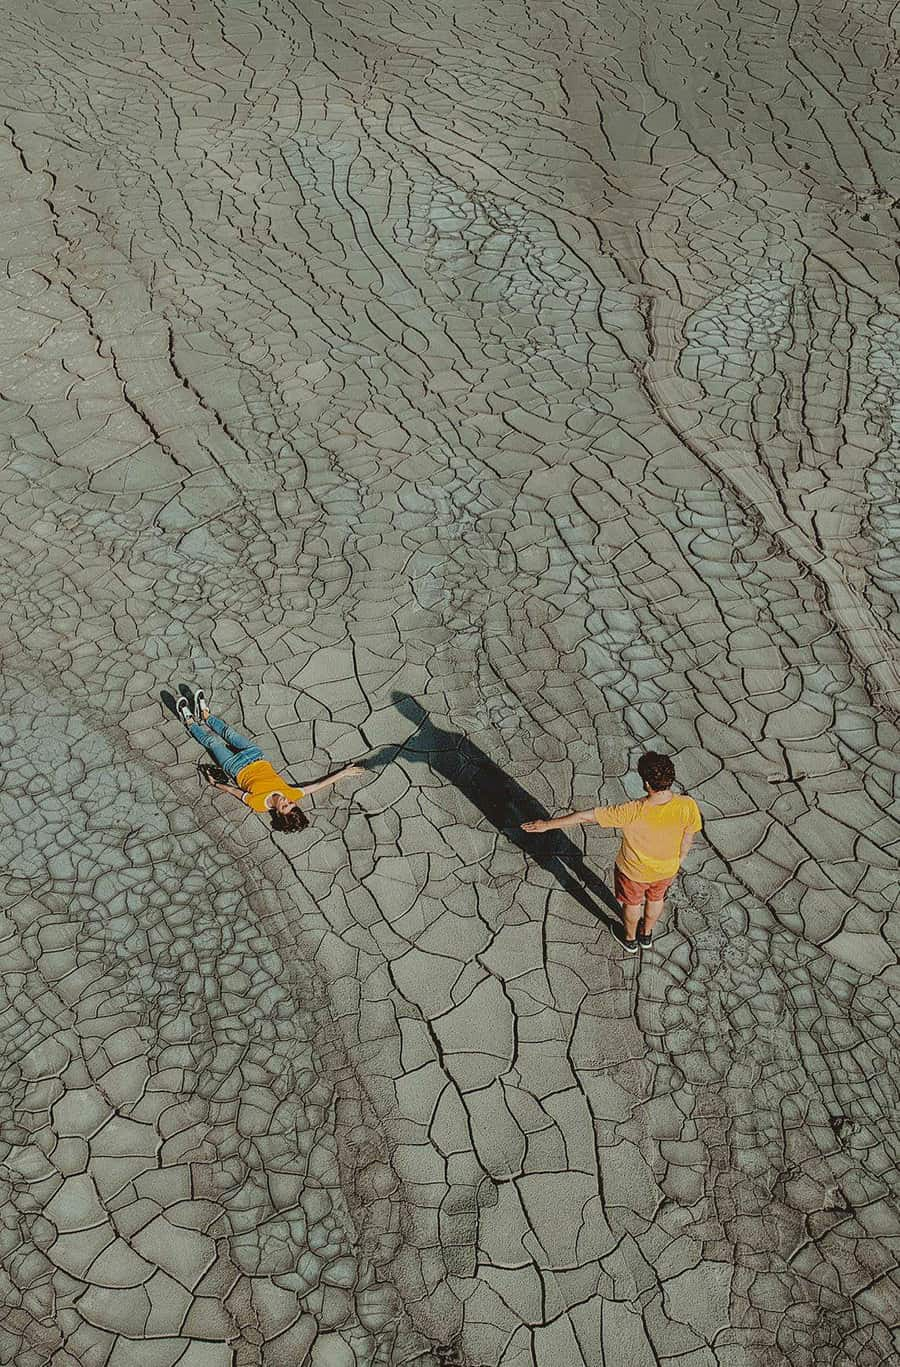 Drone Photography - The 14 Most Thrilling Photos In 2018